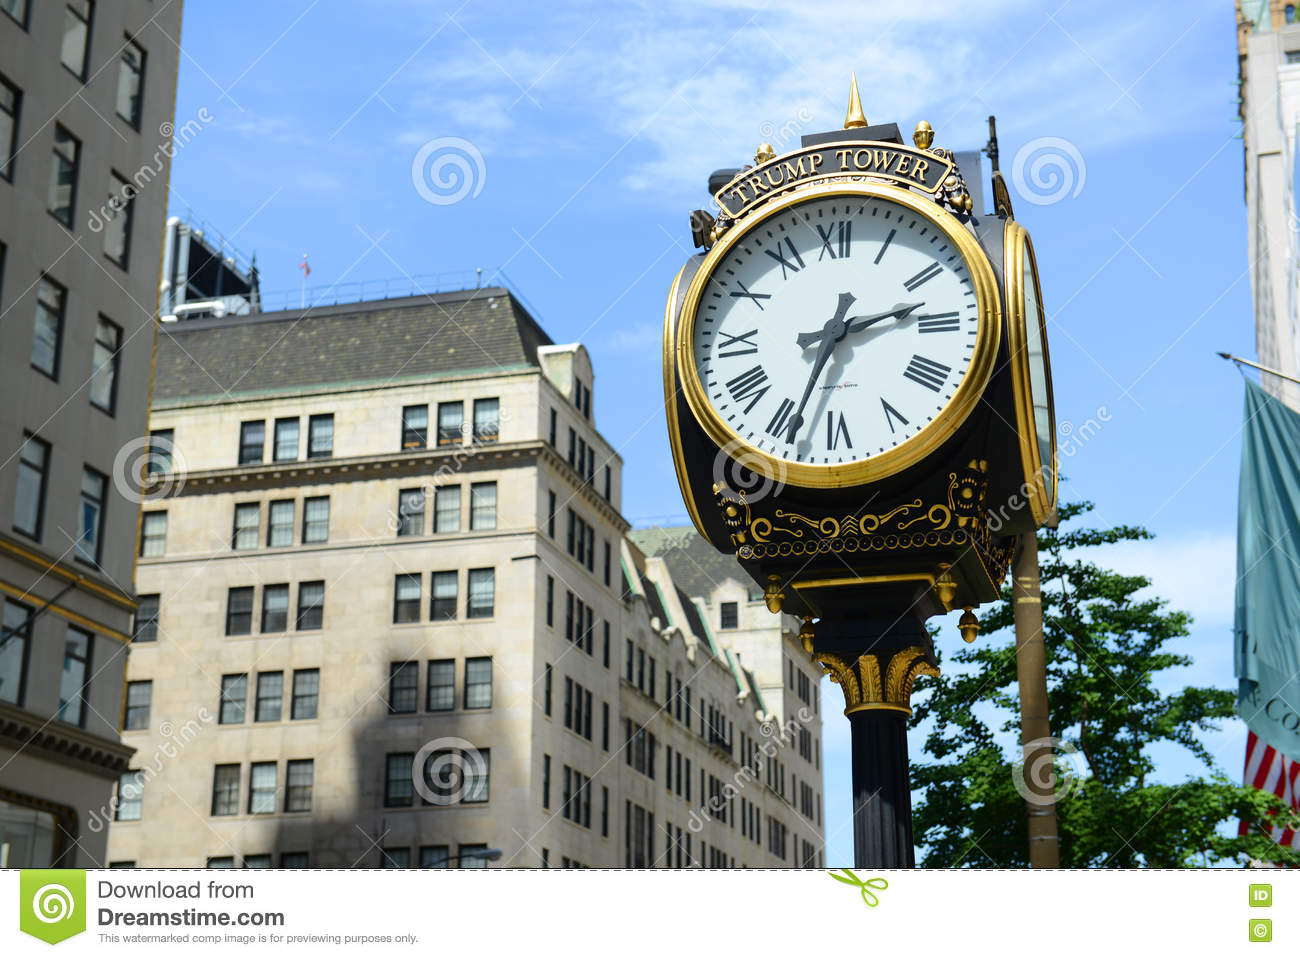 Horloge de tour d atout, Manhattan, New York City